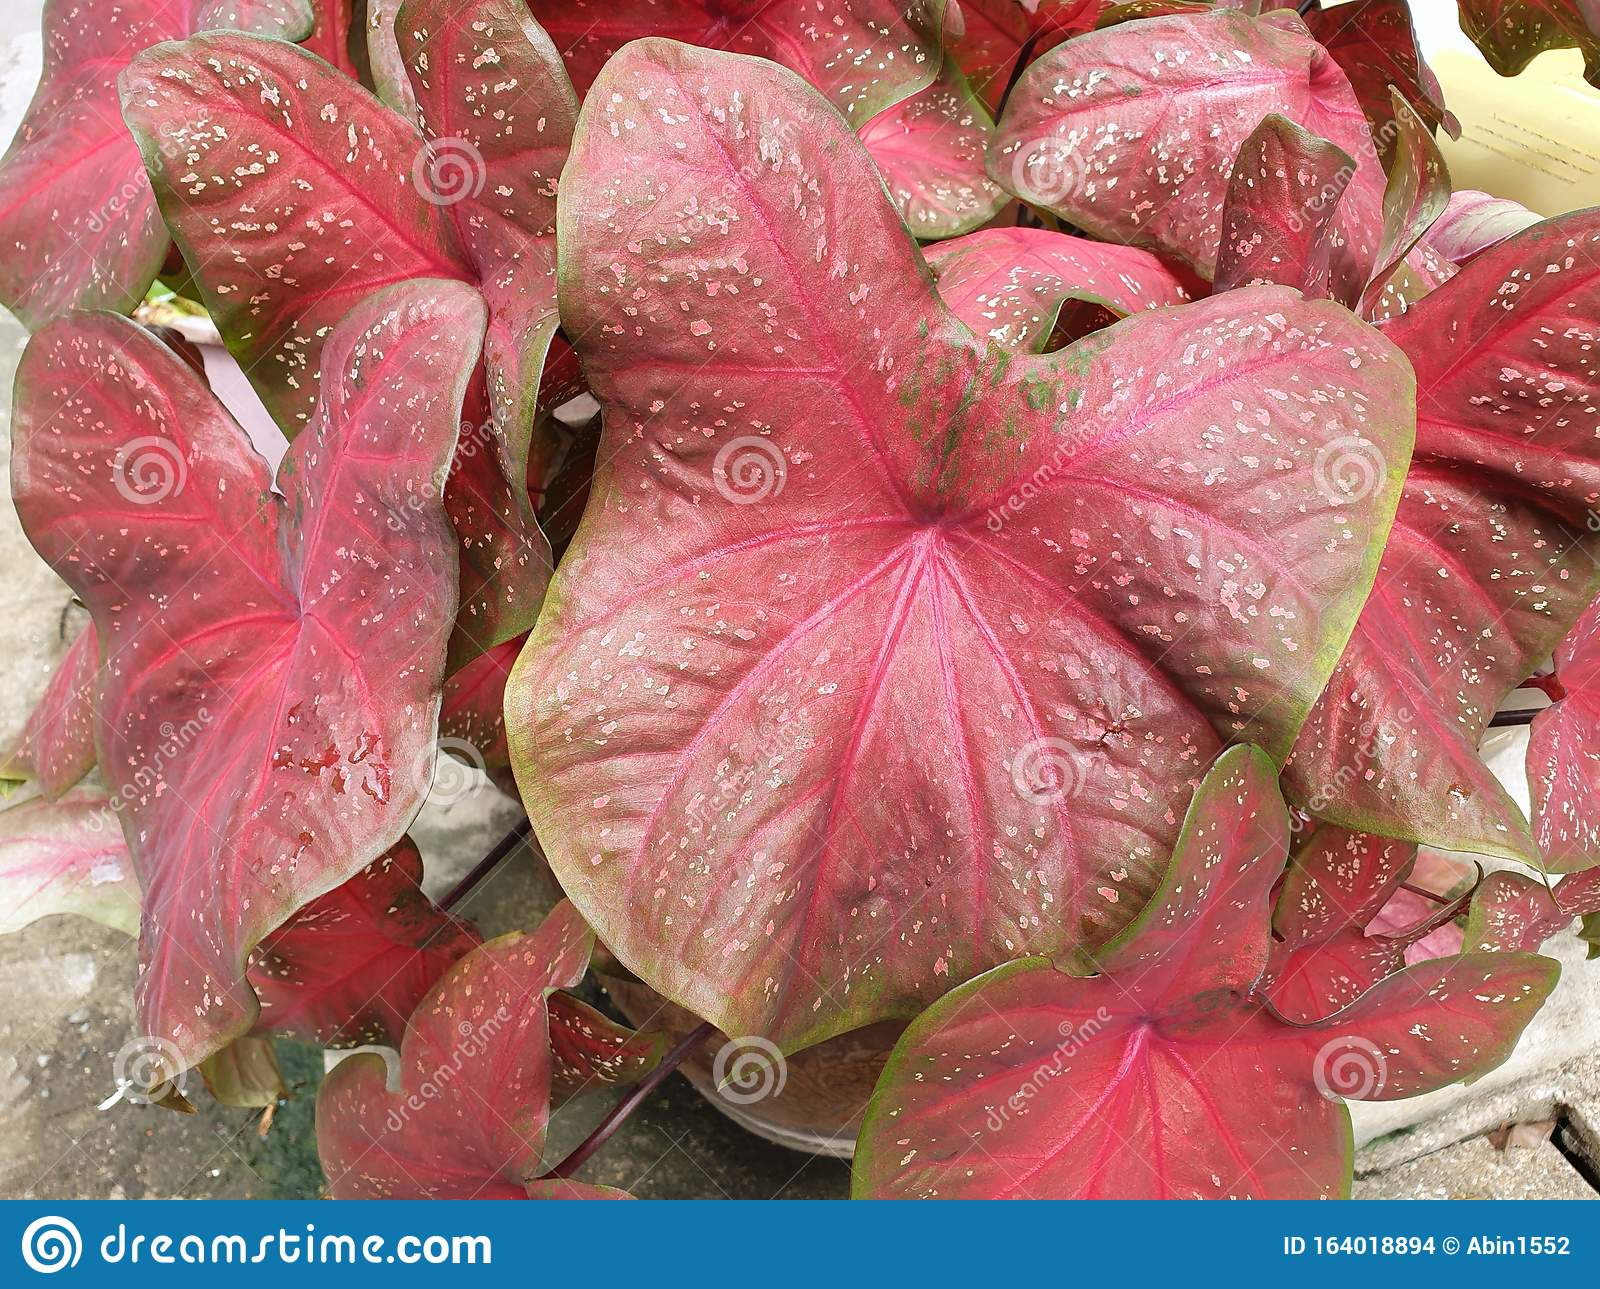 Colocasia Esculenta Plant Or Elephant Ear Plant With Waterfall In The Garden Stock Photo Image Of Green Garden 164018894